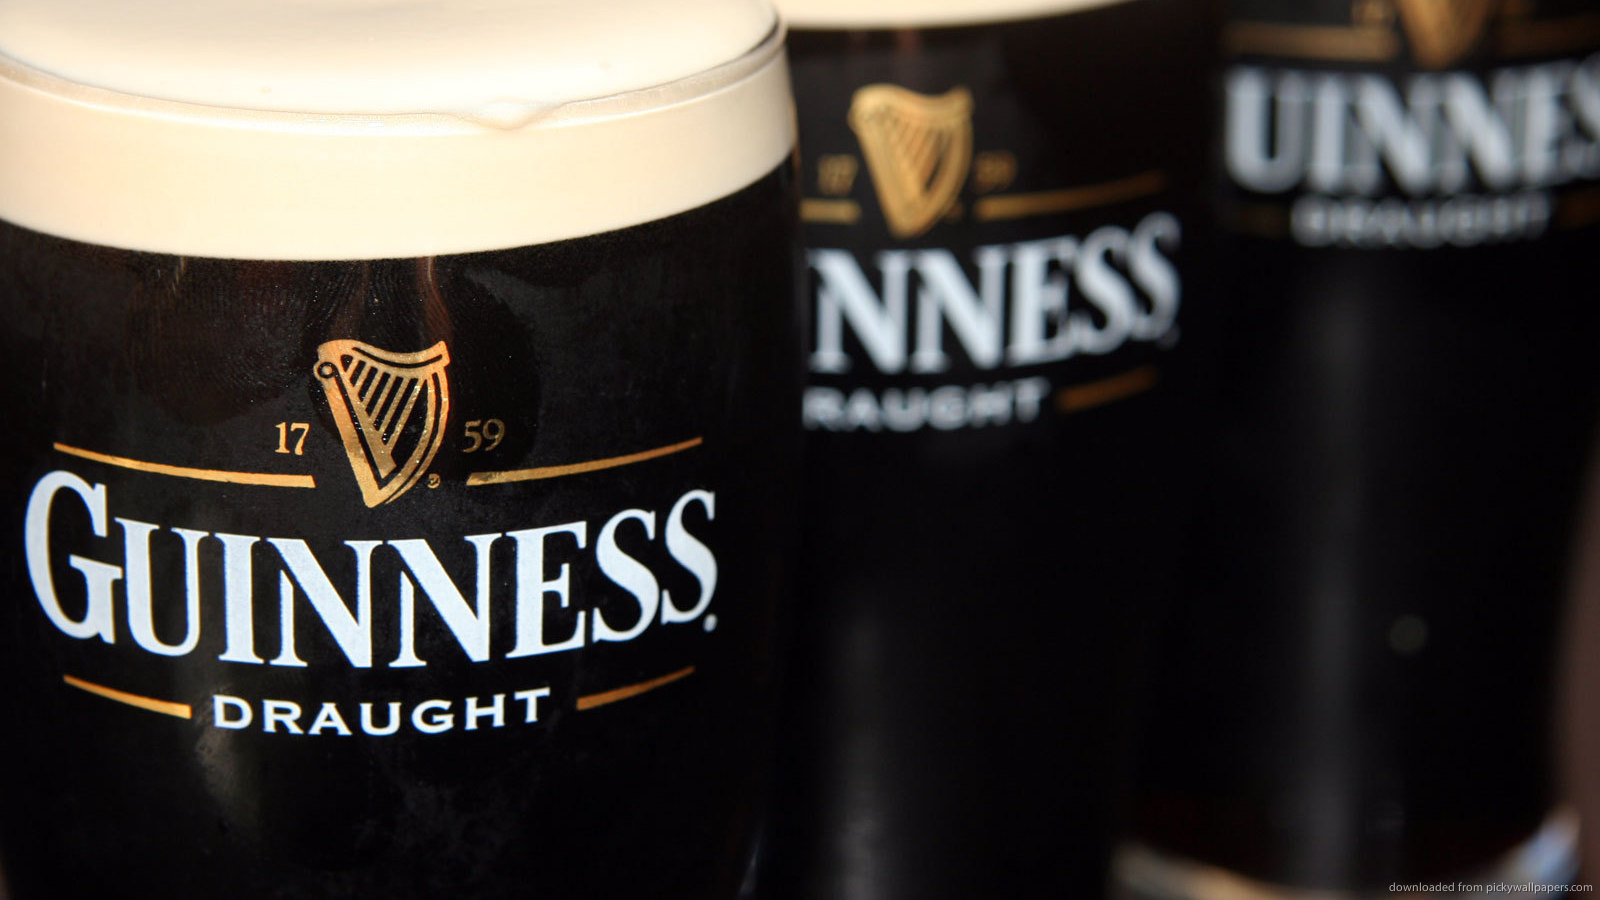 Top 5 craft beers for guinness lovers the brew review crew - Guinness beer images ...